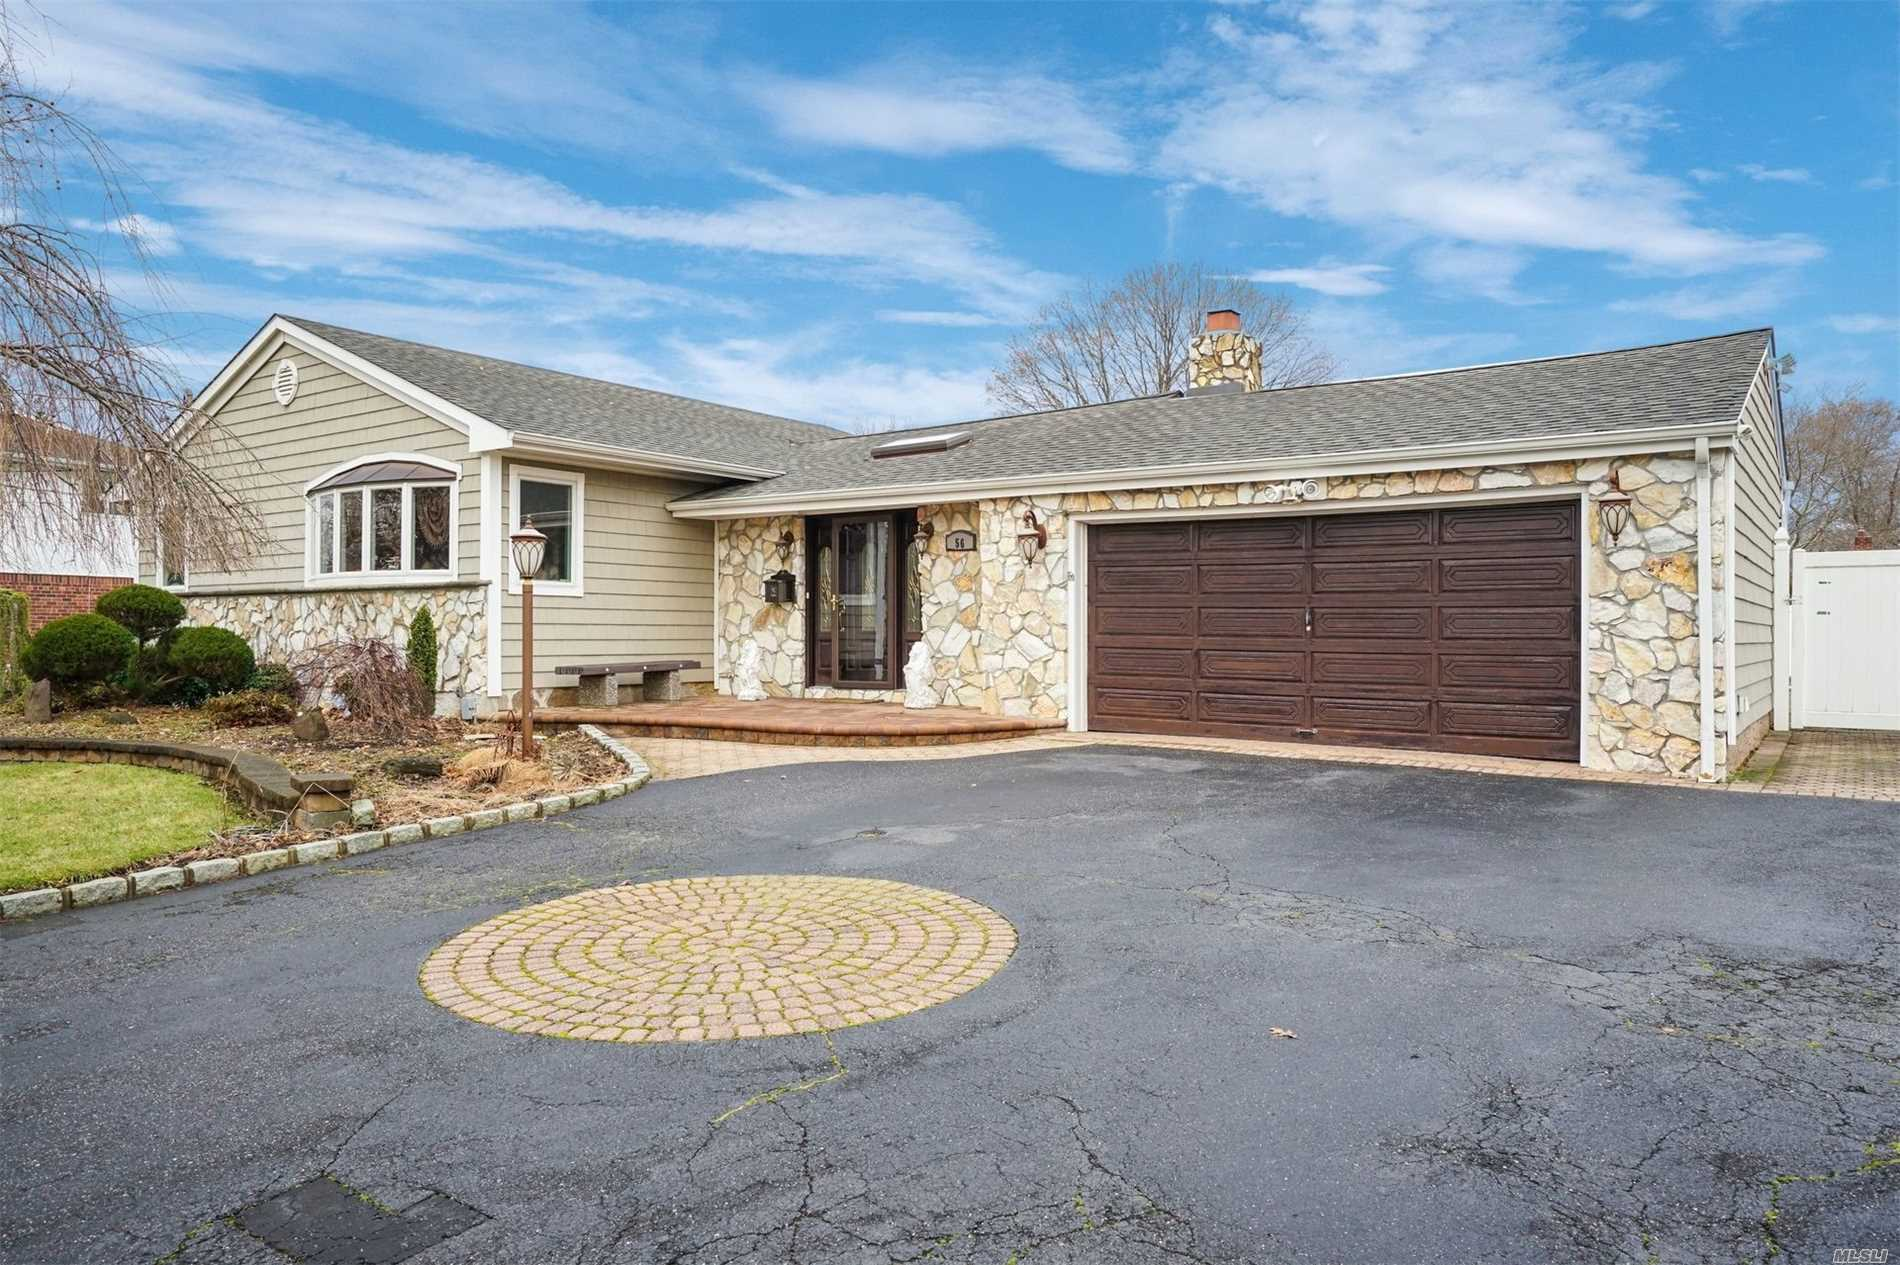 Garage For Sale Long Island 3 Bed 2 Bath Home In Commack For 499 000